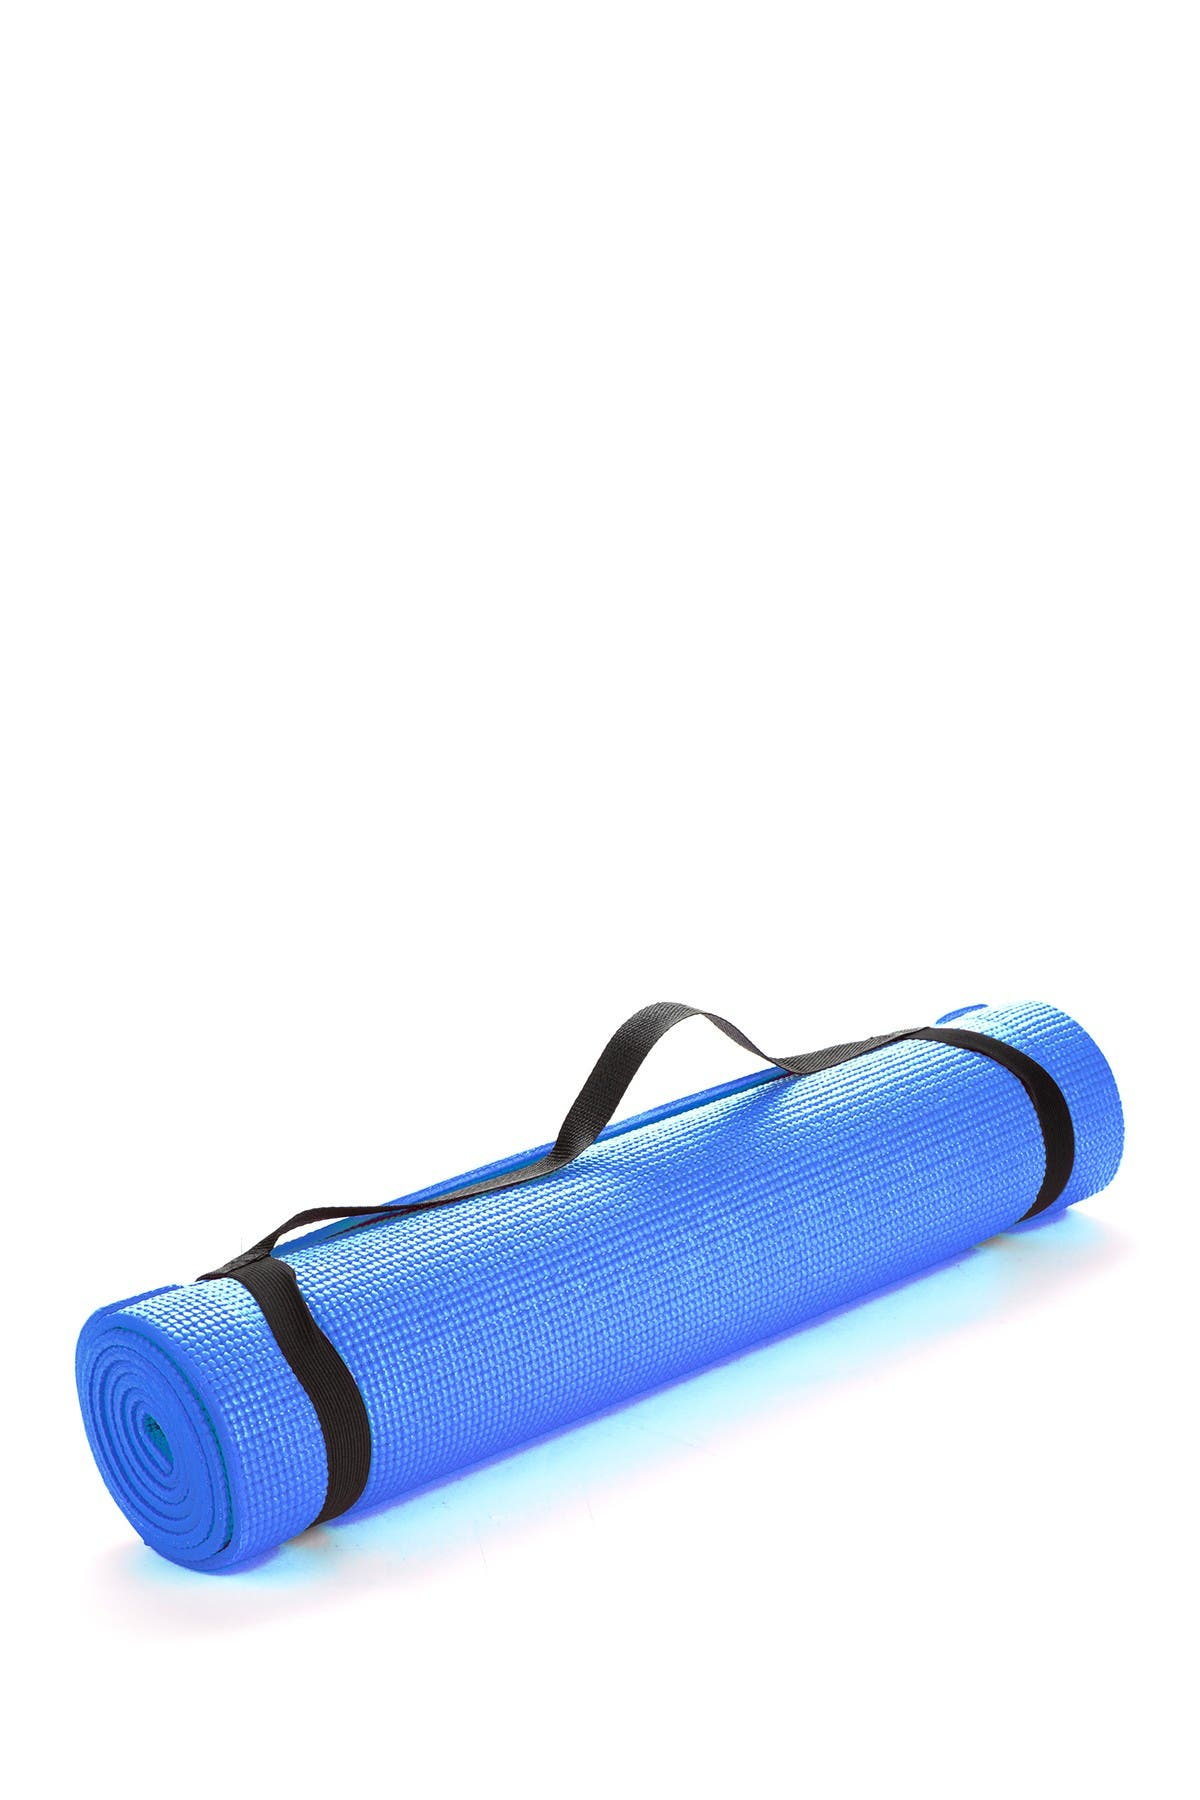 Image of Mindreader All Purpose Extra Thick Yoga Mat & Carrying Strap